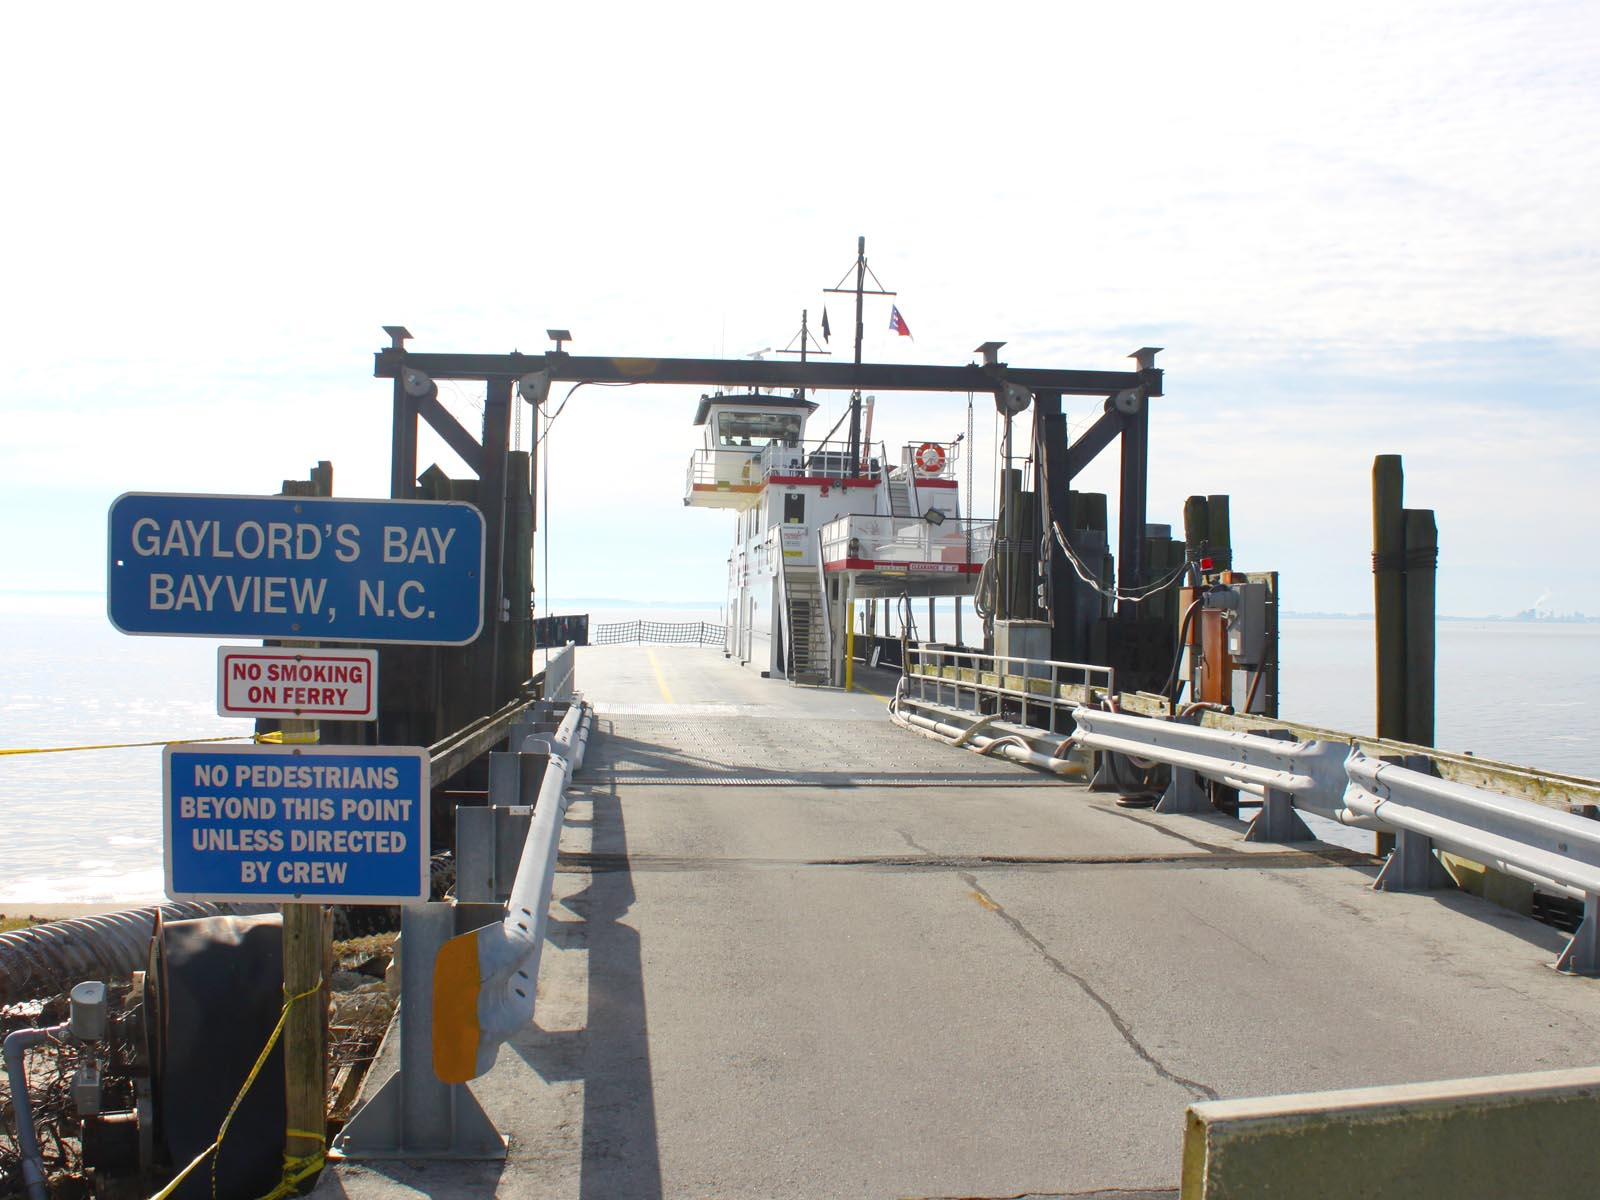 Vehicle loading entrance area at Bayview ferry station in North Carolina